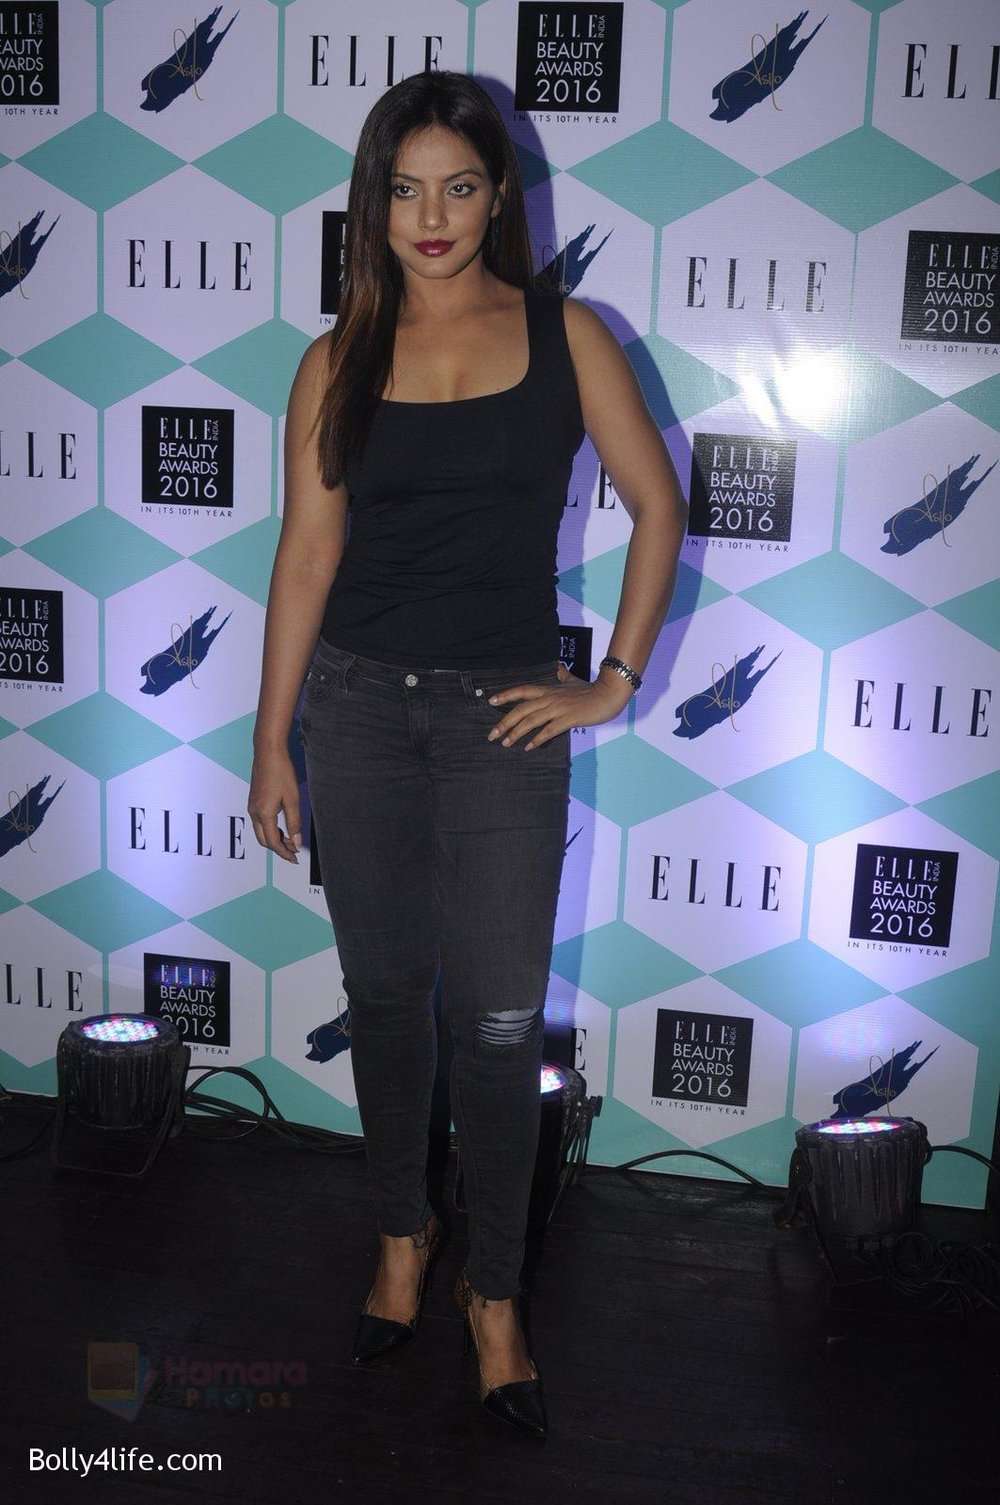 Neetu-Chandra-at-Elle-Beauty-Awards-on-5th-Oct-2016-36.jpg